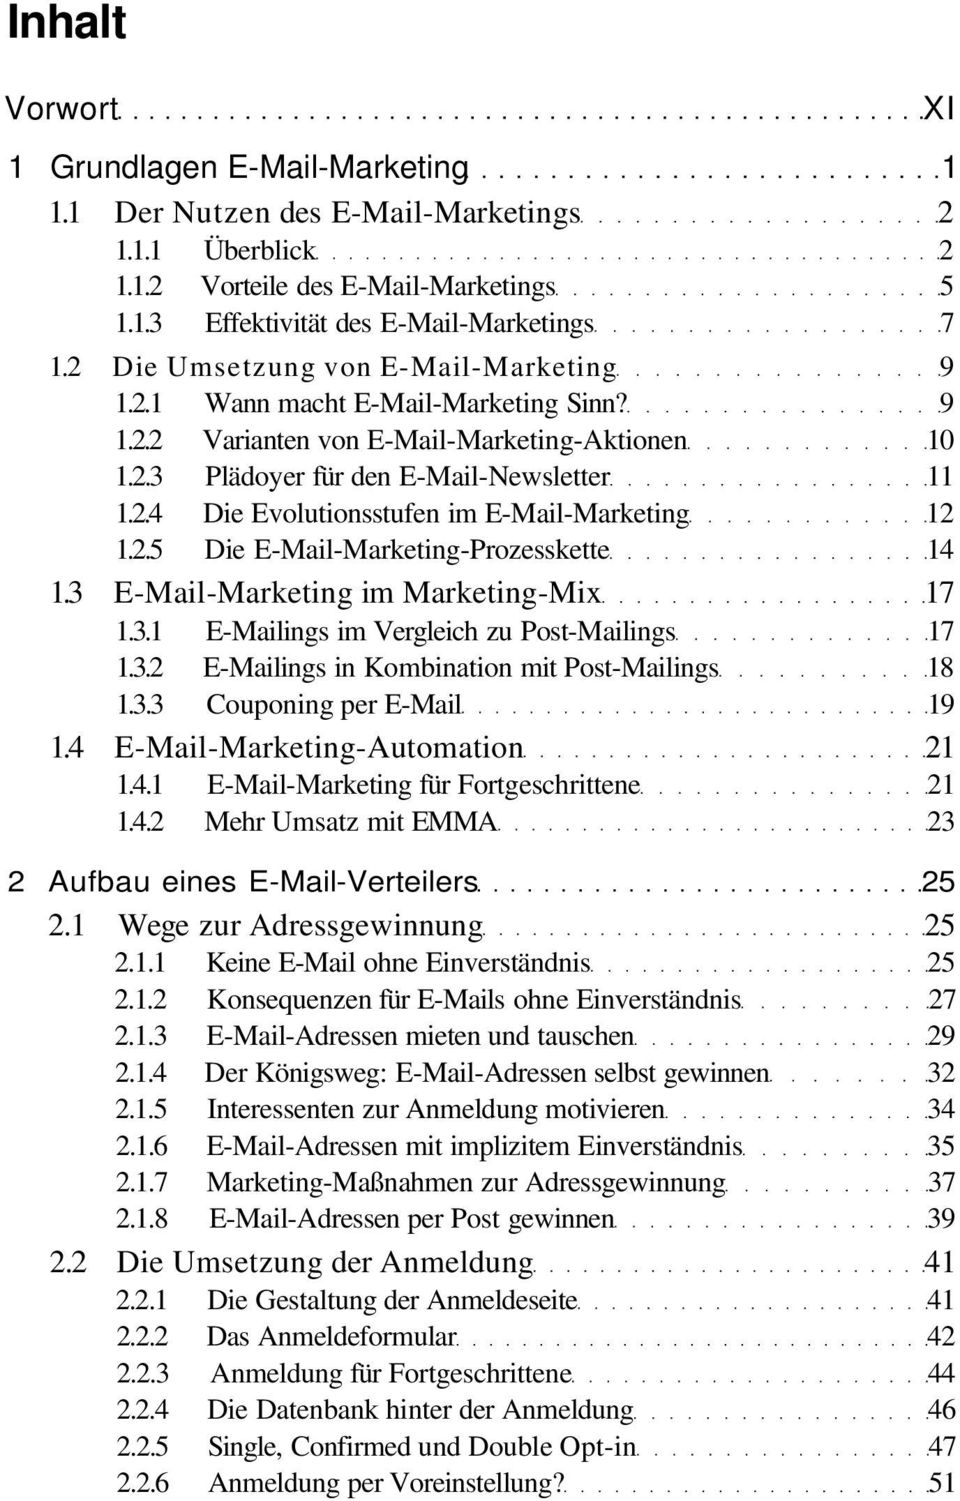 2.5 Die E-Mail-Marketing-Prozesskette 14 1.3 E-Mail-Marketing im Marketing-Mix 17 1.3.1 E-Mailings im Vergleich zu Post-Mailings 17 1.3.2 E-Mailings in Kombination mit Post-Mailings 18 1.3.3 Couponing per E-Mail 19 1.